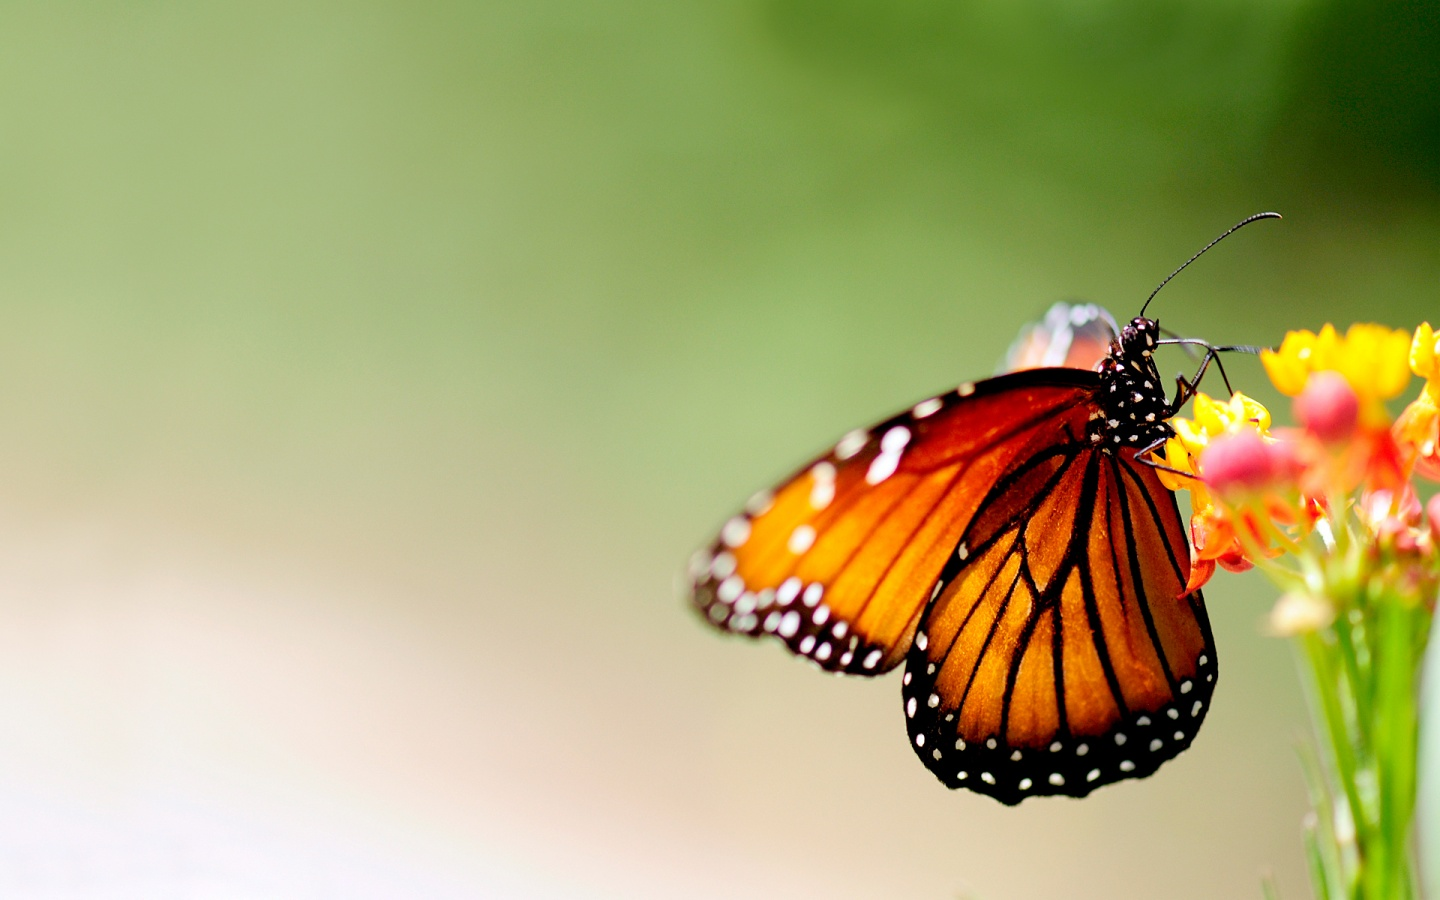 Butterfly On Colorful Flower Wallpapers   1440x900   256117 1440x900